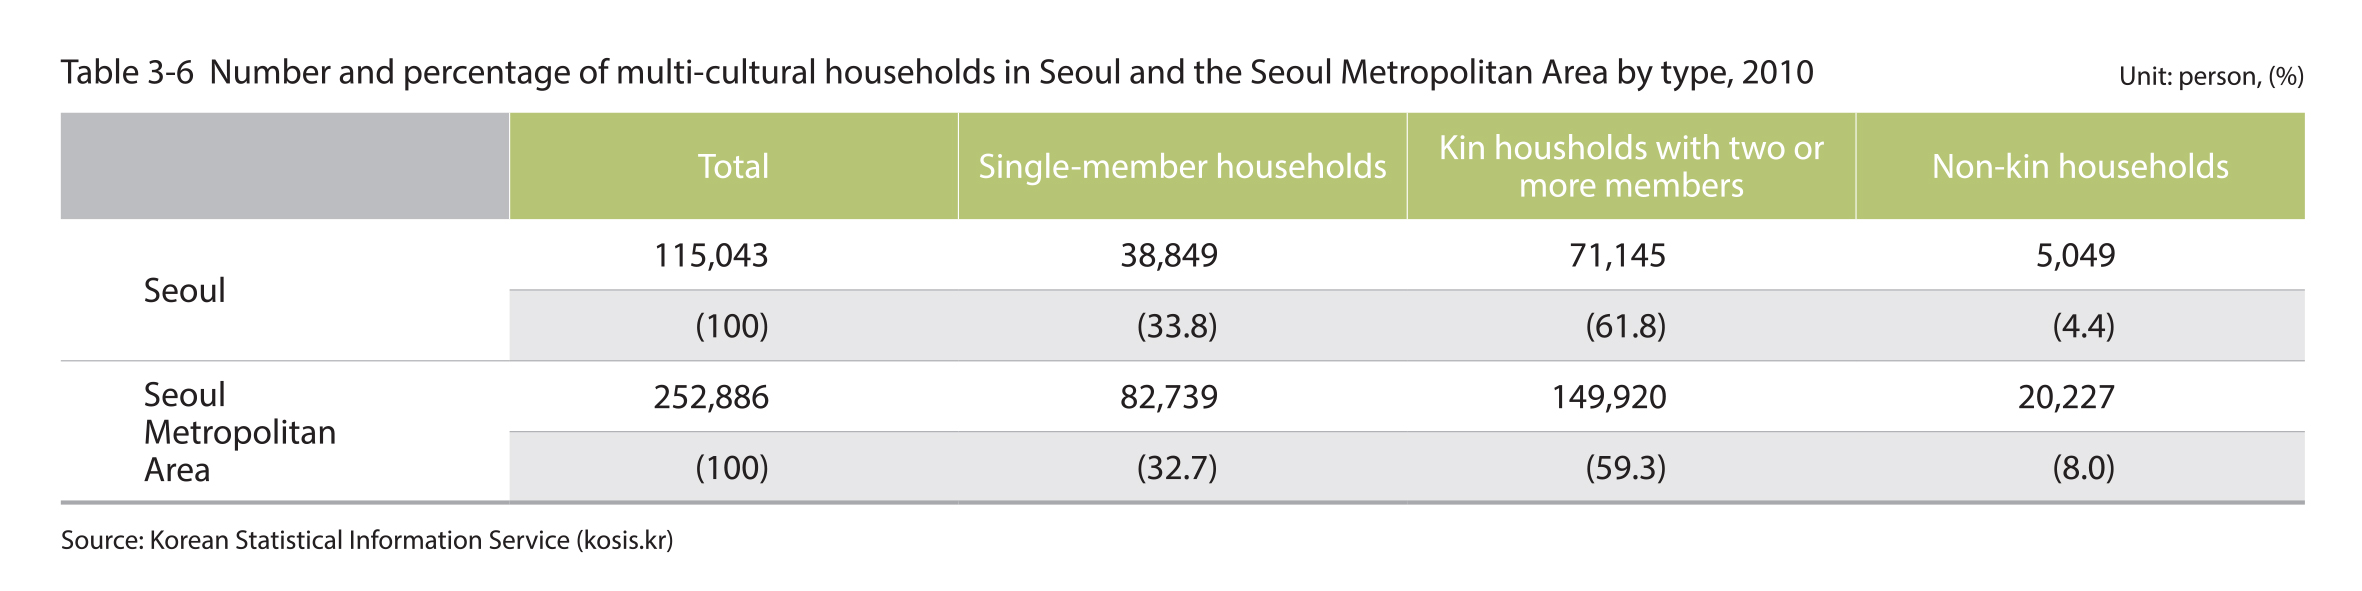 Number and percentage of multi-cultural household in Seoul and the Seoul Metropolitan Area by type, 2010